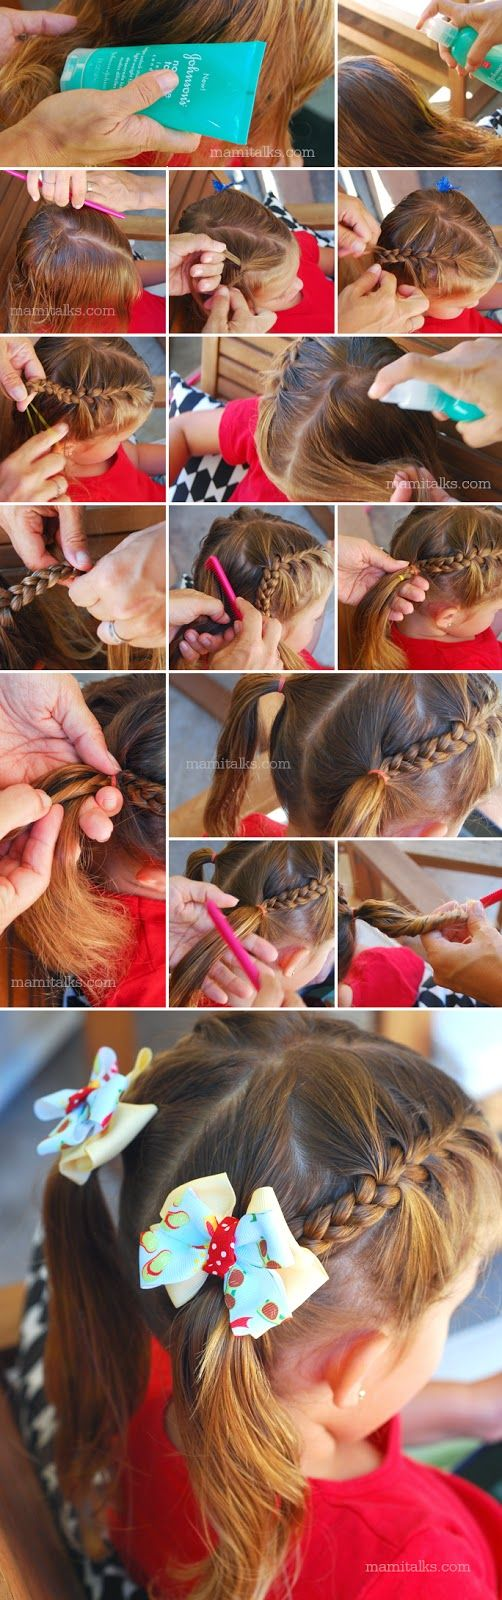 Mami Talks Back To School Hairstyle Half Braided Pigtails Kids Hairstyles Pinterest